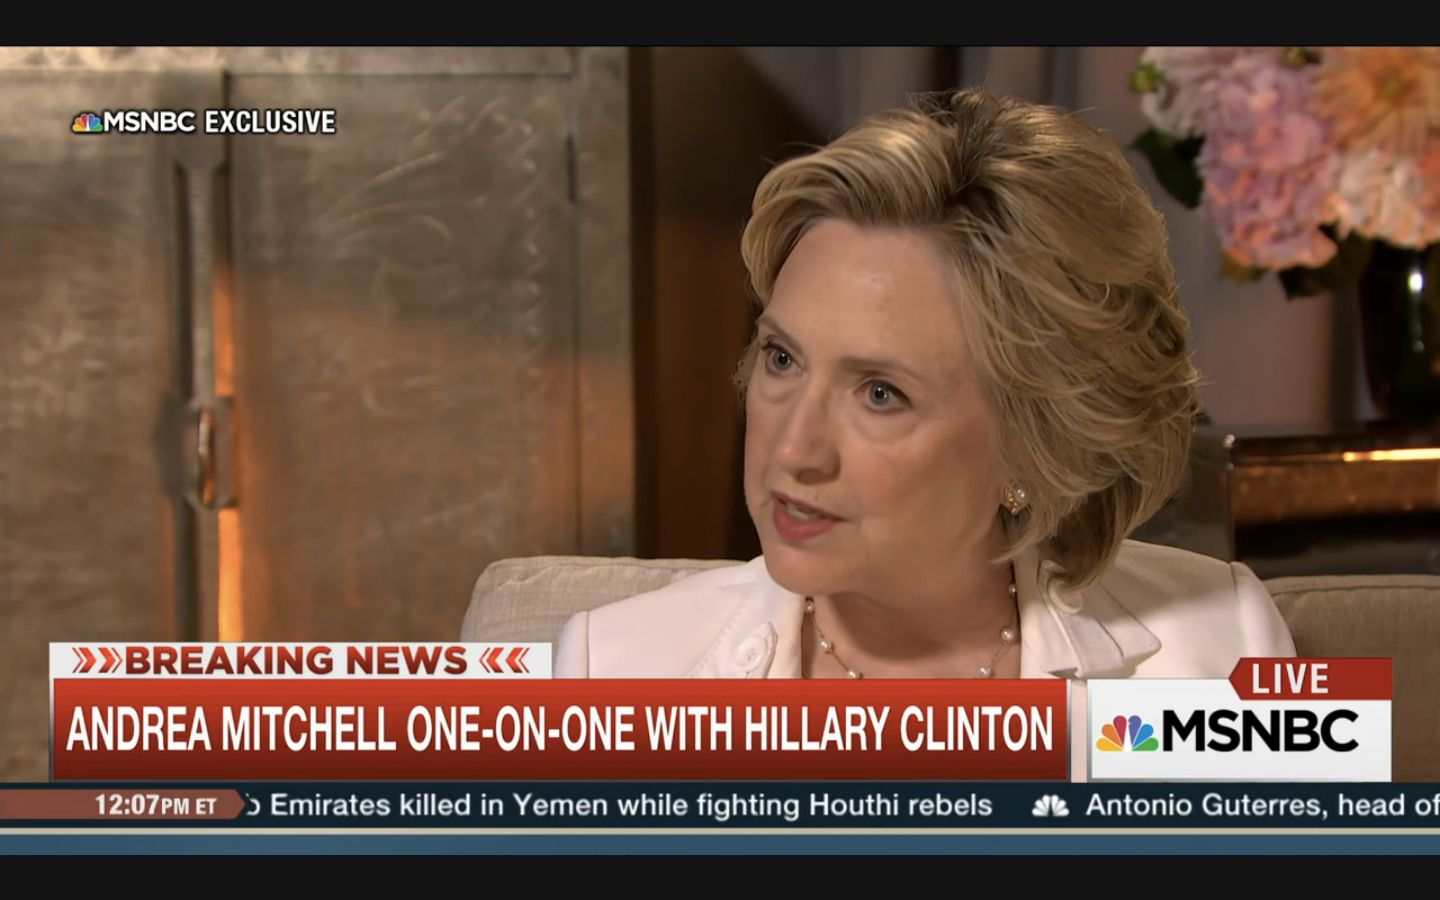 Hillary Clinton addressed claims about her private e-mail use in a Friday interview with Andrea Mitchell on MSNBC.